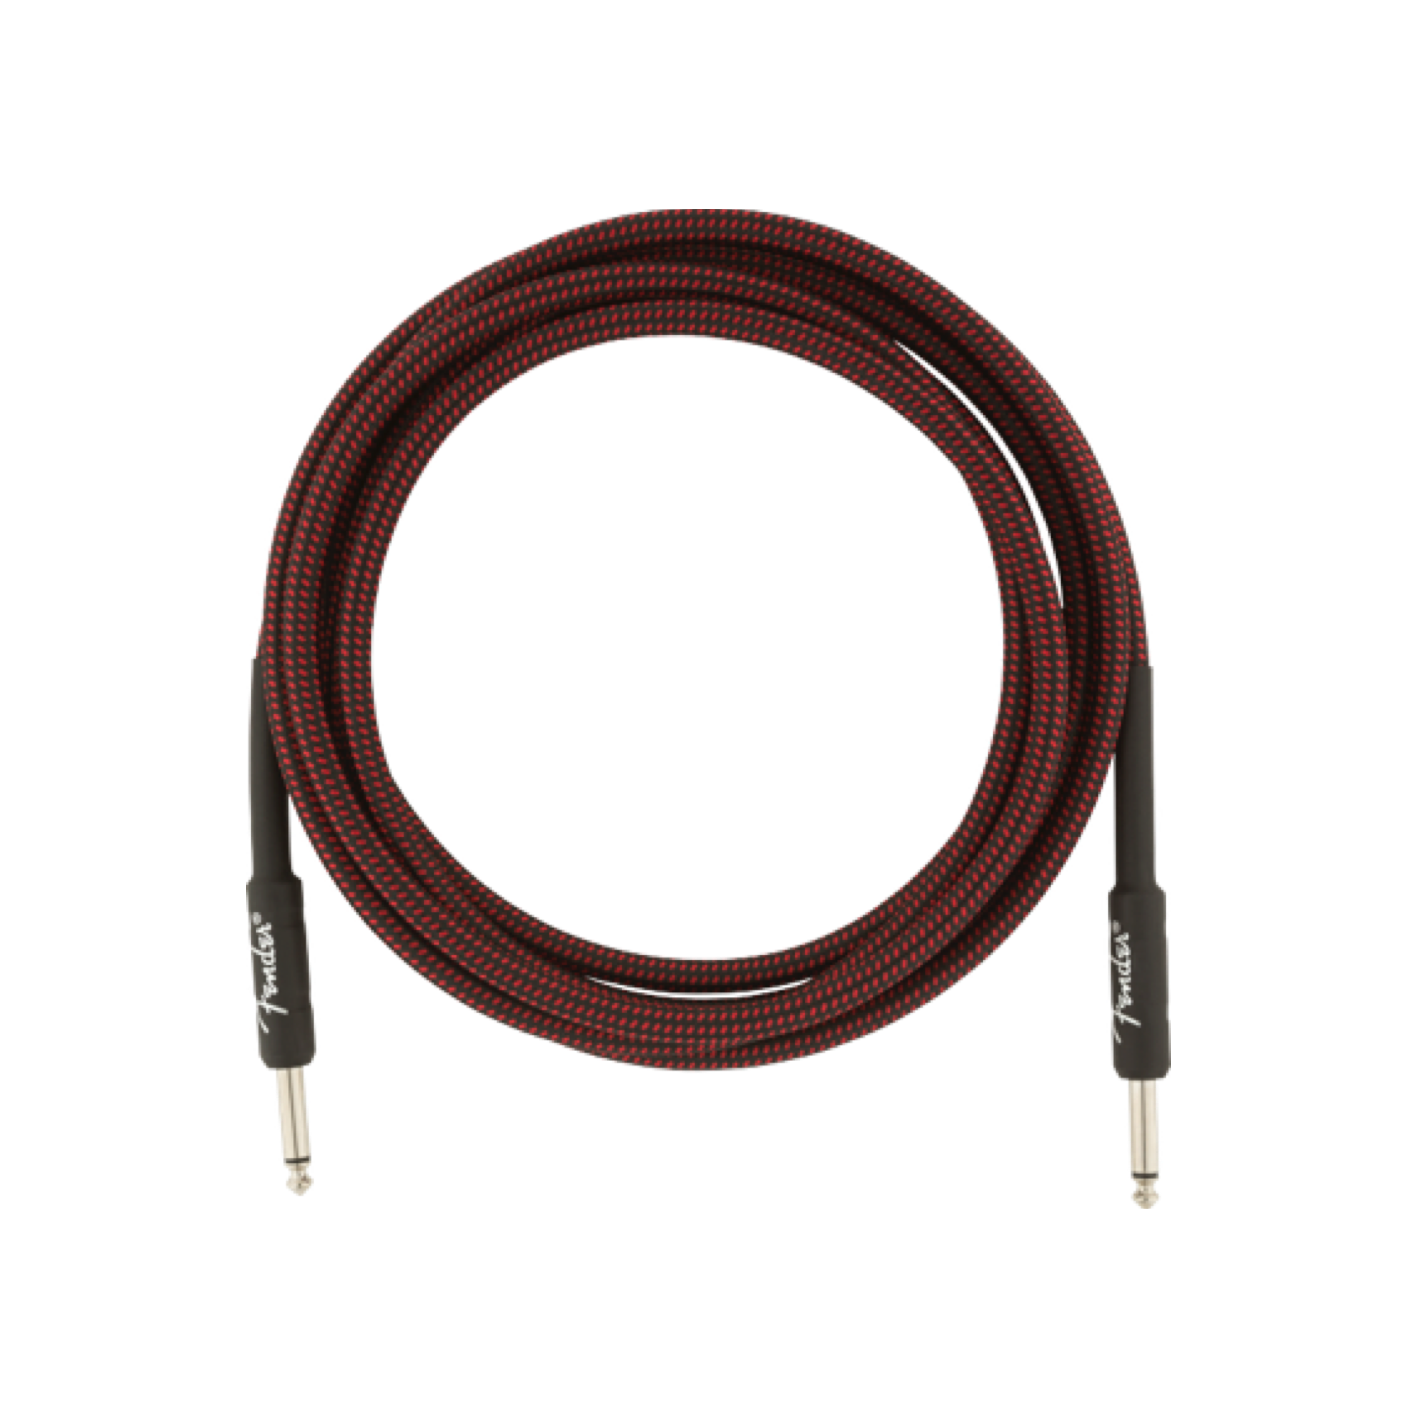 Fender Pro Series Tweed Instrument Cable 3m (Various Colours)